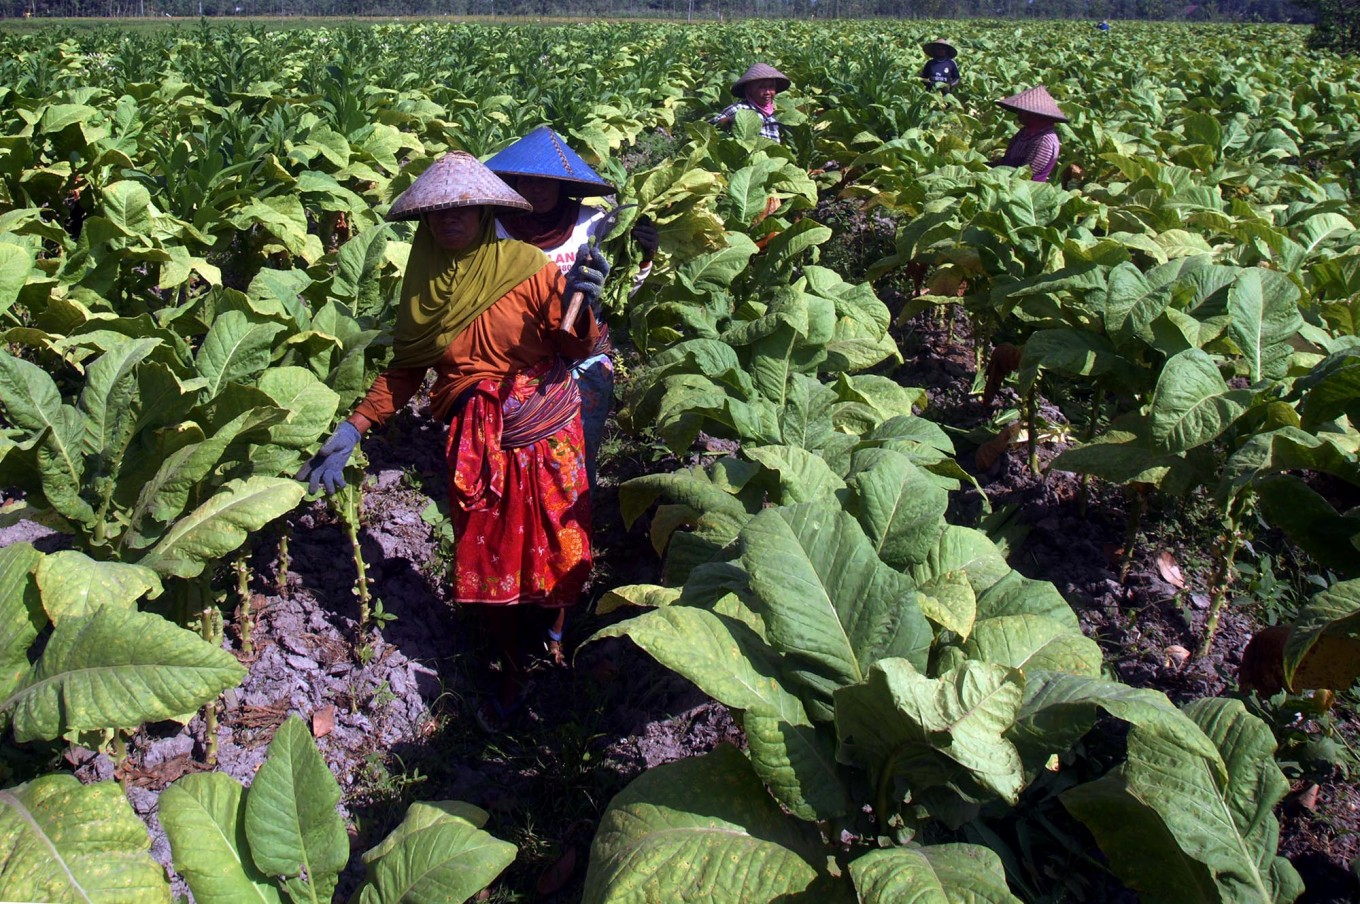 Women trainees practice topping – cutting off the flower buds – on Virginia tobacco plants at a training farm on Sept. 7 in Puyung village, Jonggat district, Central Lombok. The buds are cut off to prevent seeding and to redirect the tobacco plant's energy into